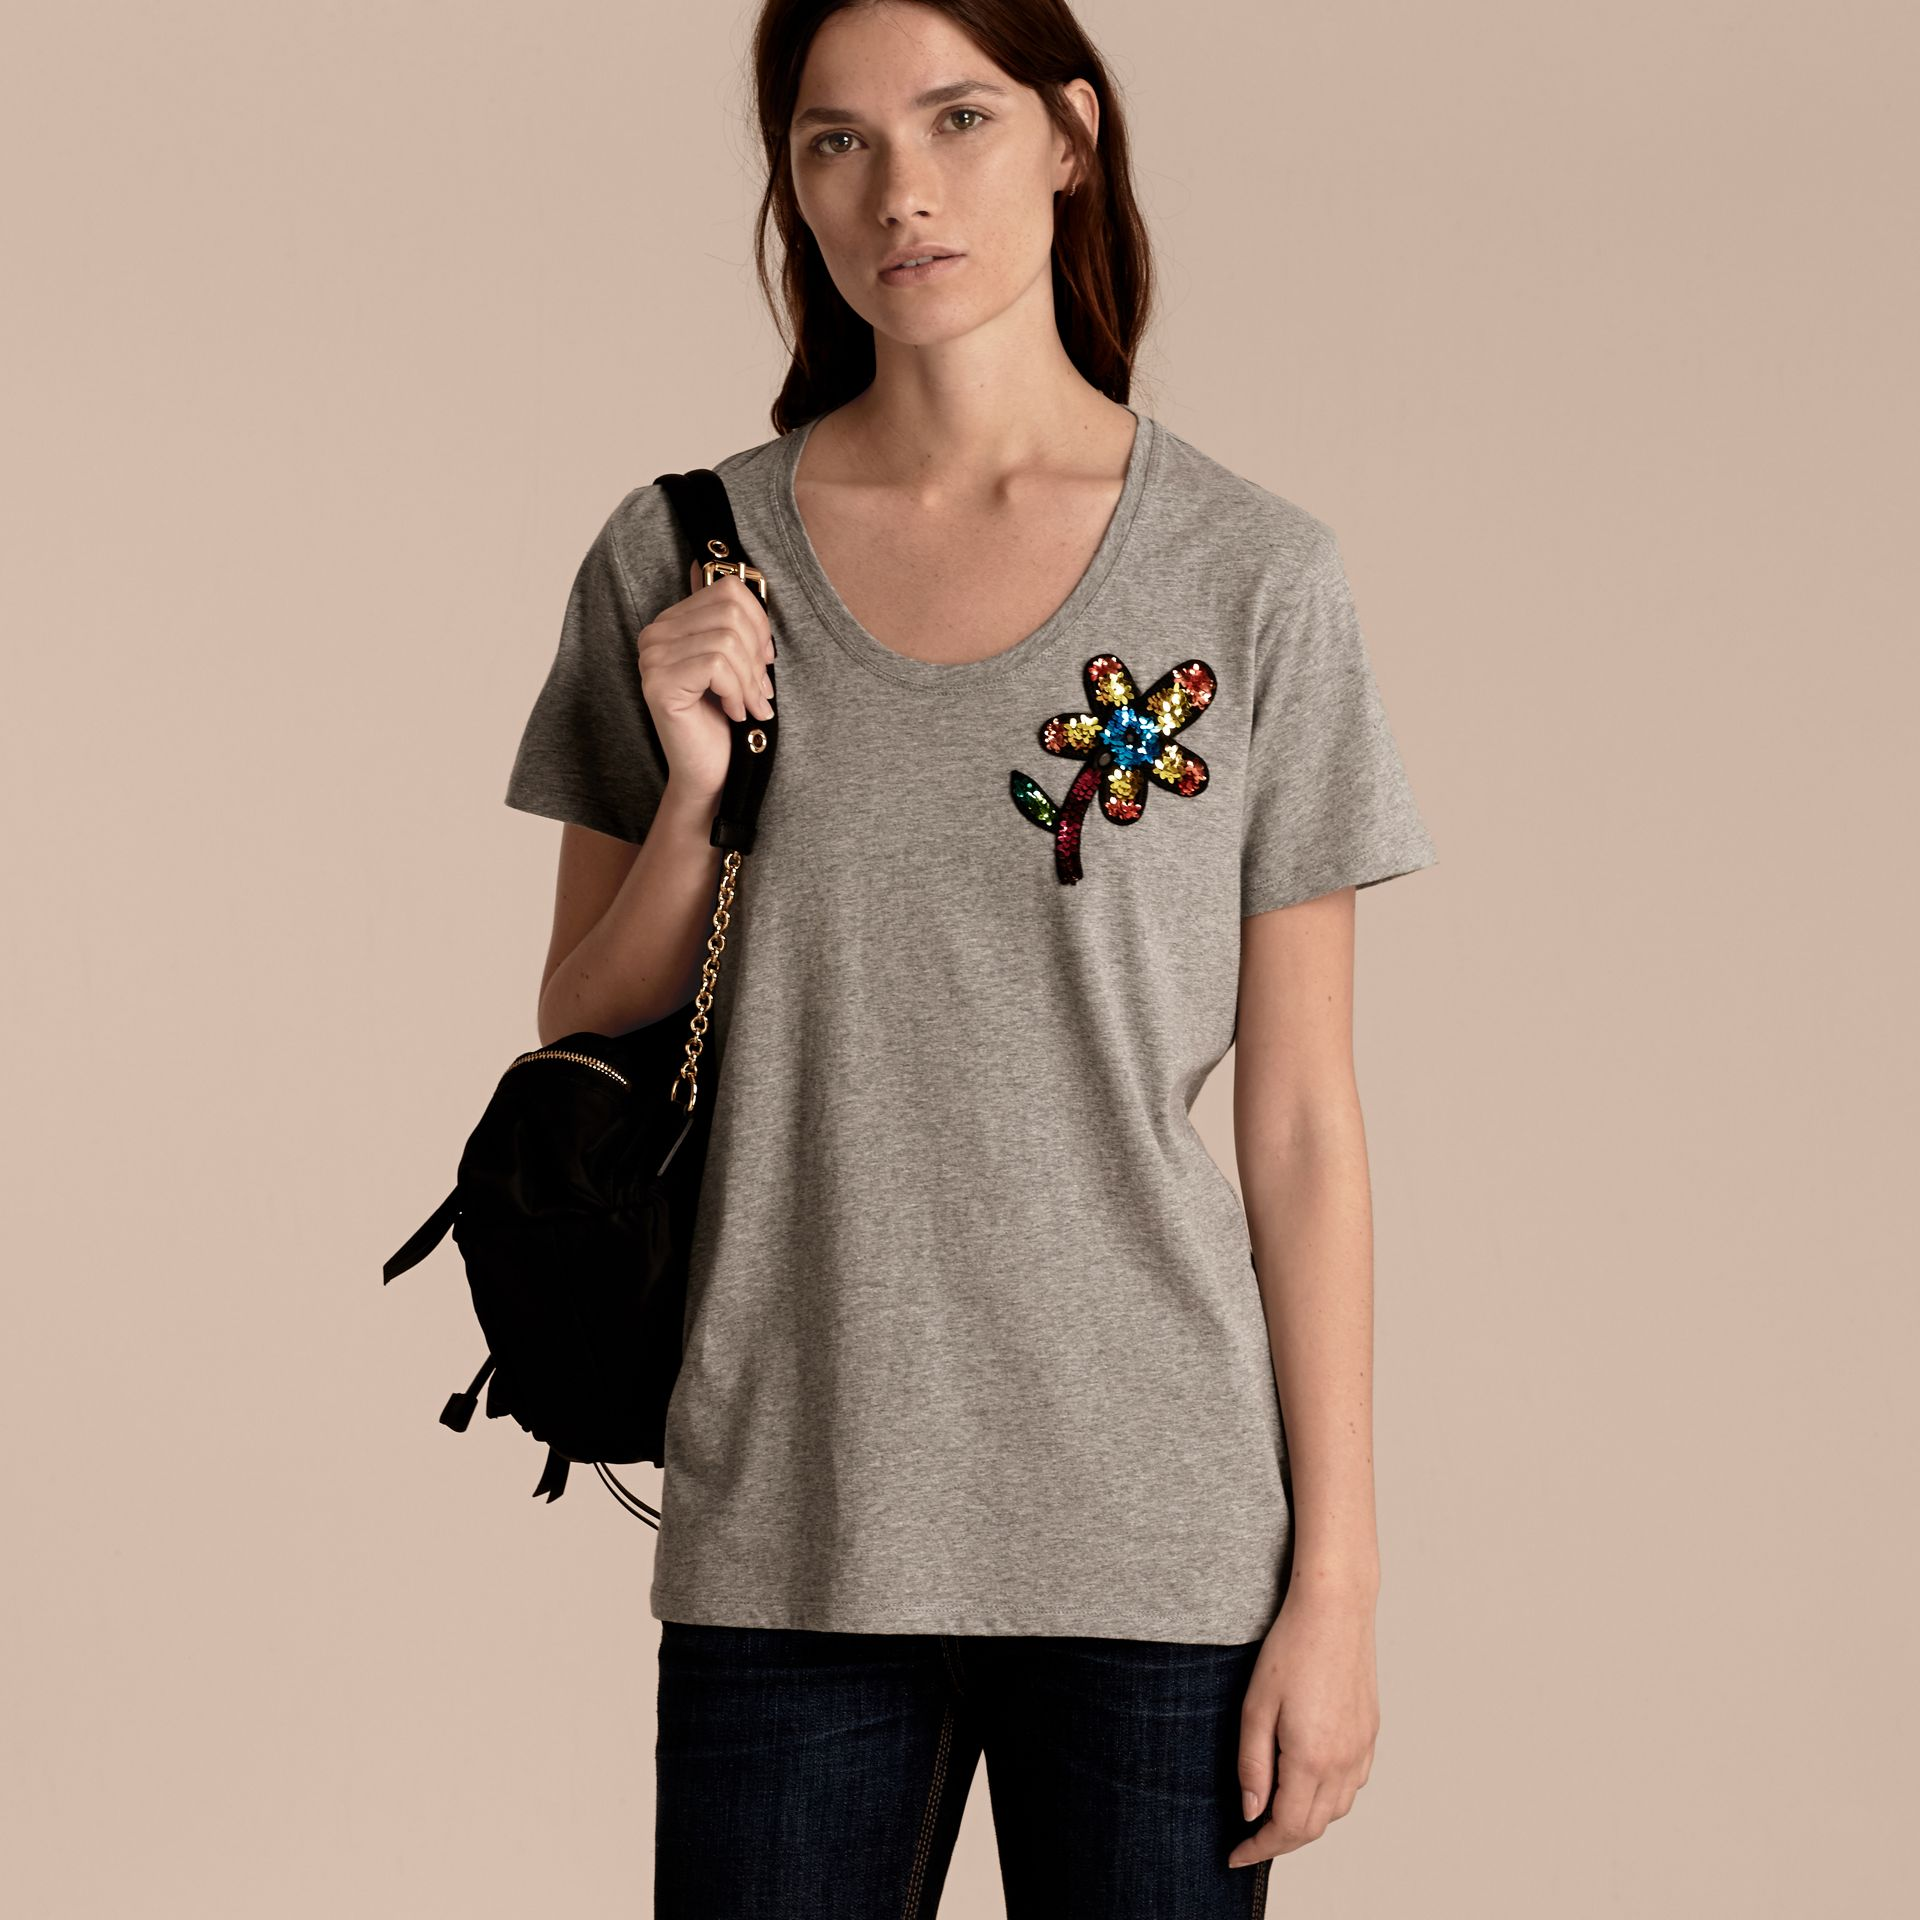 Pale grey melange Sequin Floral Appliqué Cotton T-Shirt Pale Grey Melange - gallery image 6